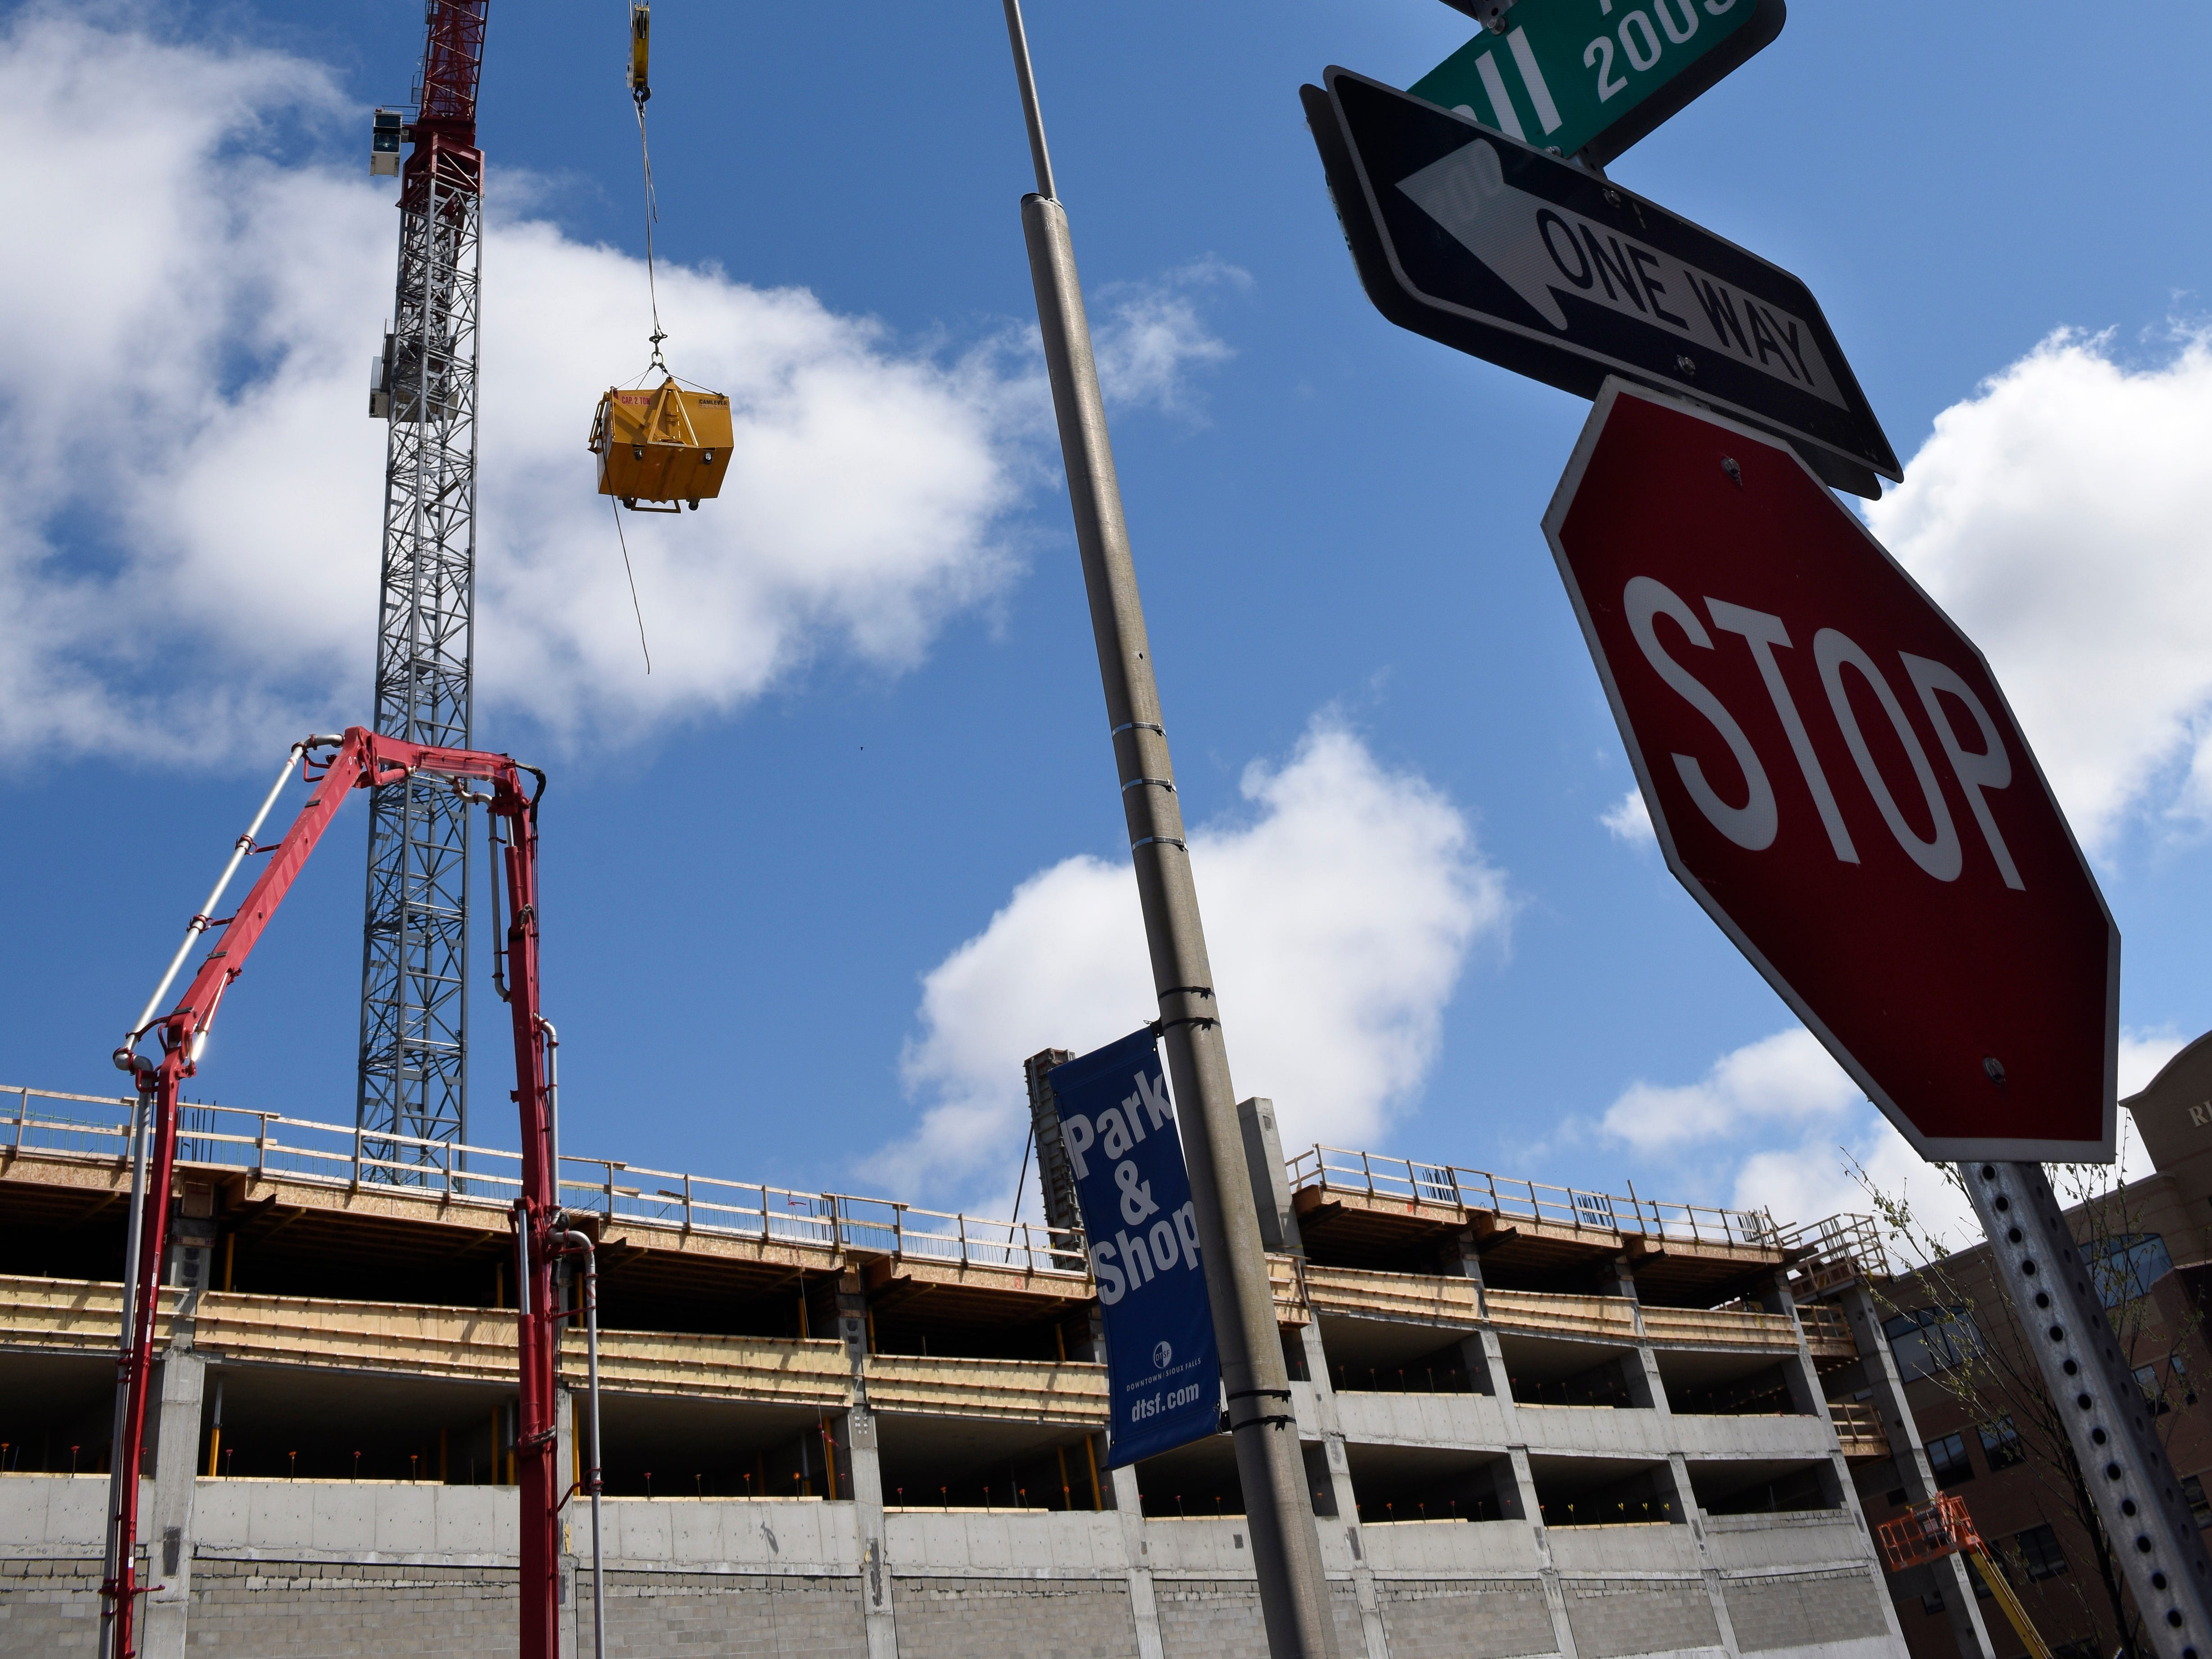 Construction crews pour work on the Village on the River development in downtown Sioux Falls on Thursday, May 2.